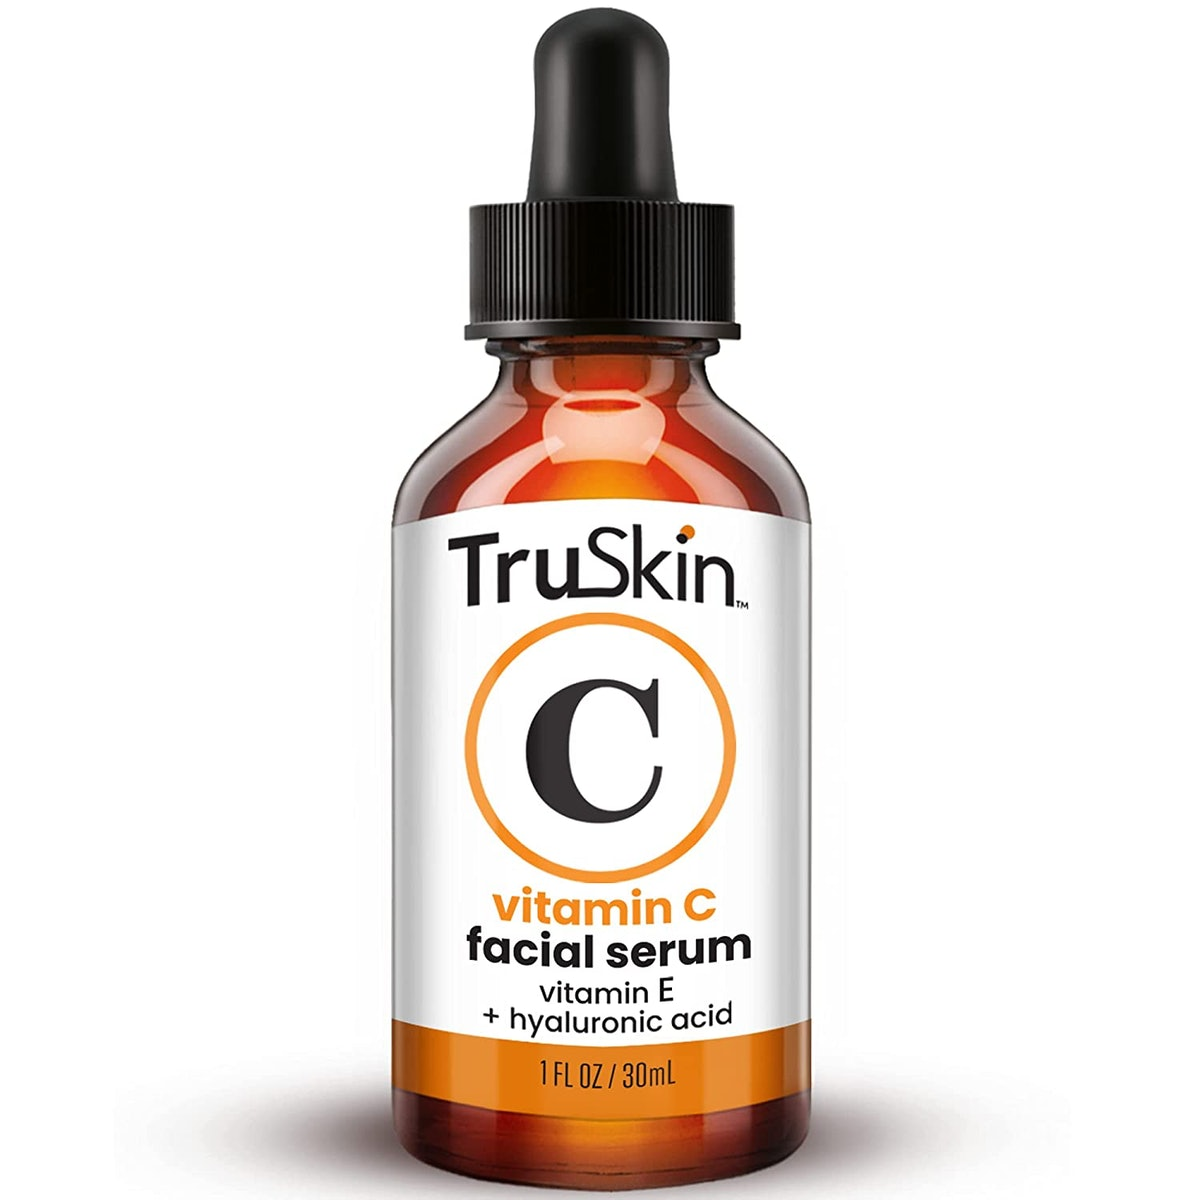 TruSkin Vitamin C Serum for Face with Hyaluronic Acid, Vitamin E, Witch Hazel